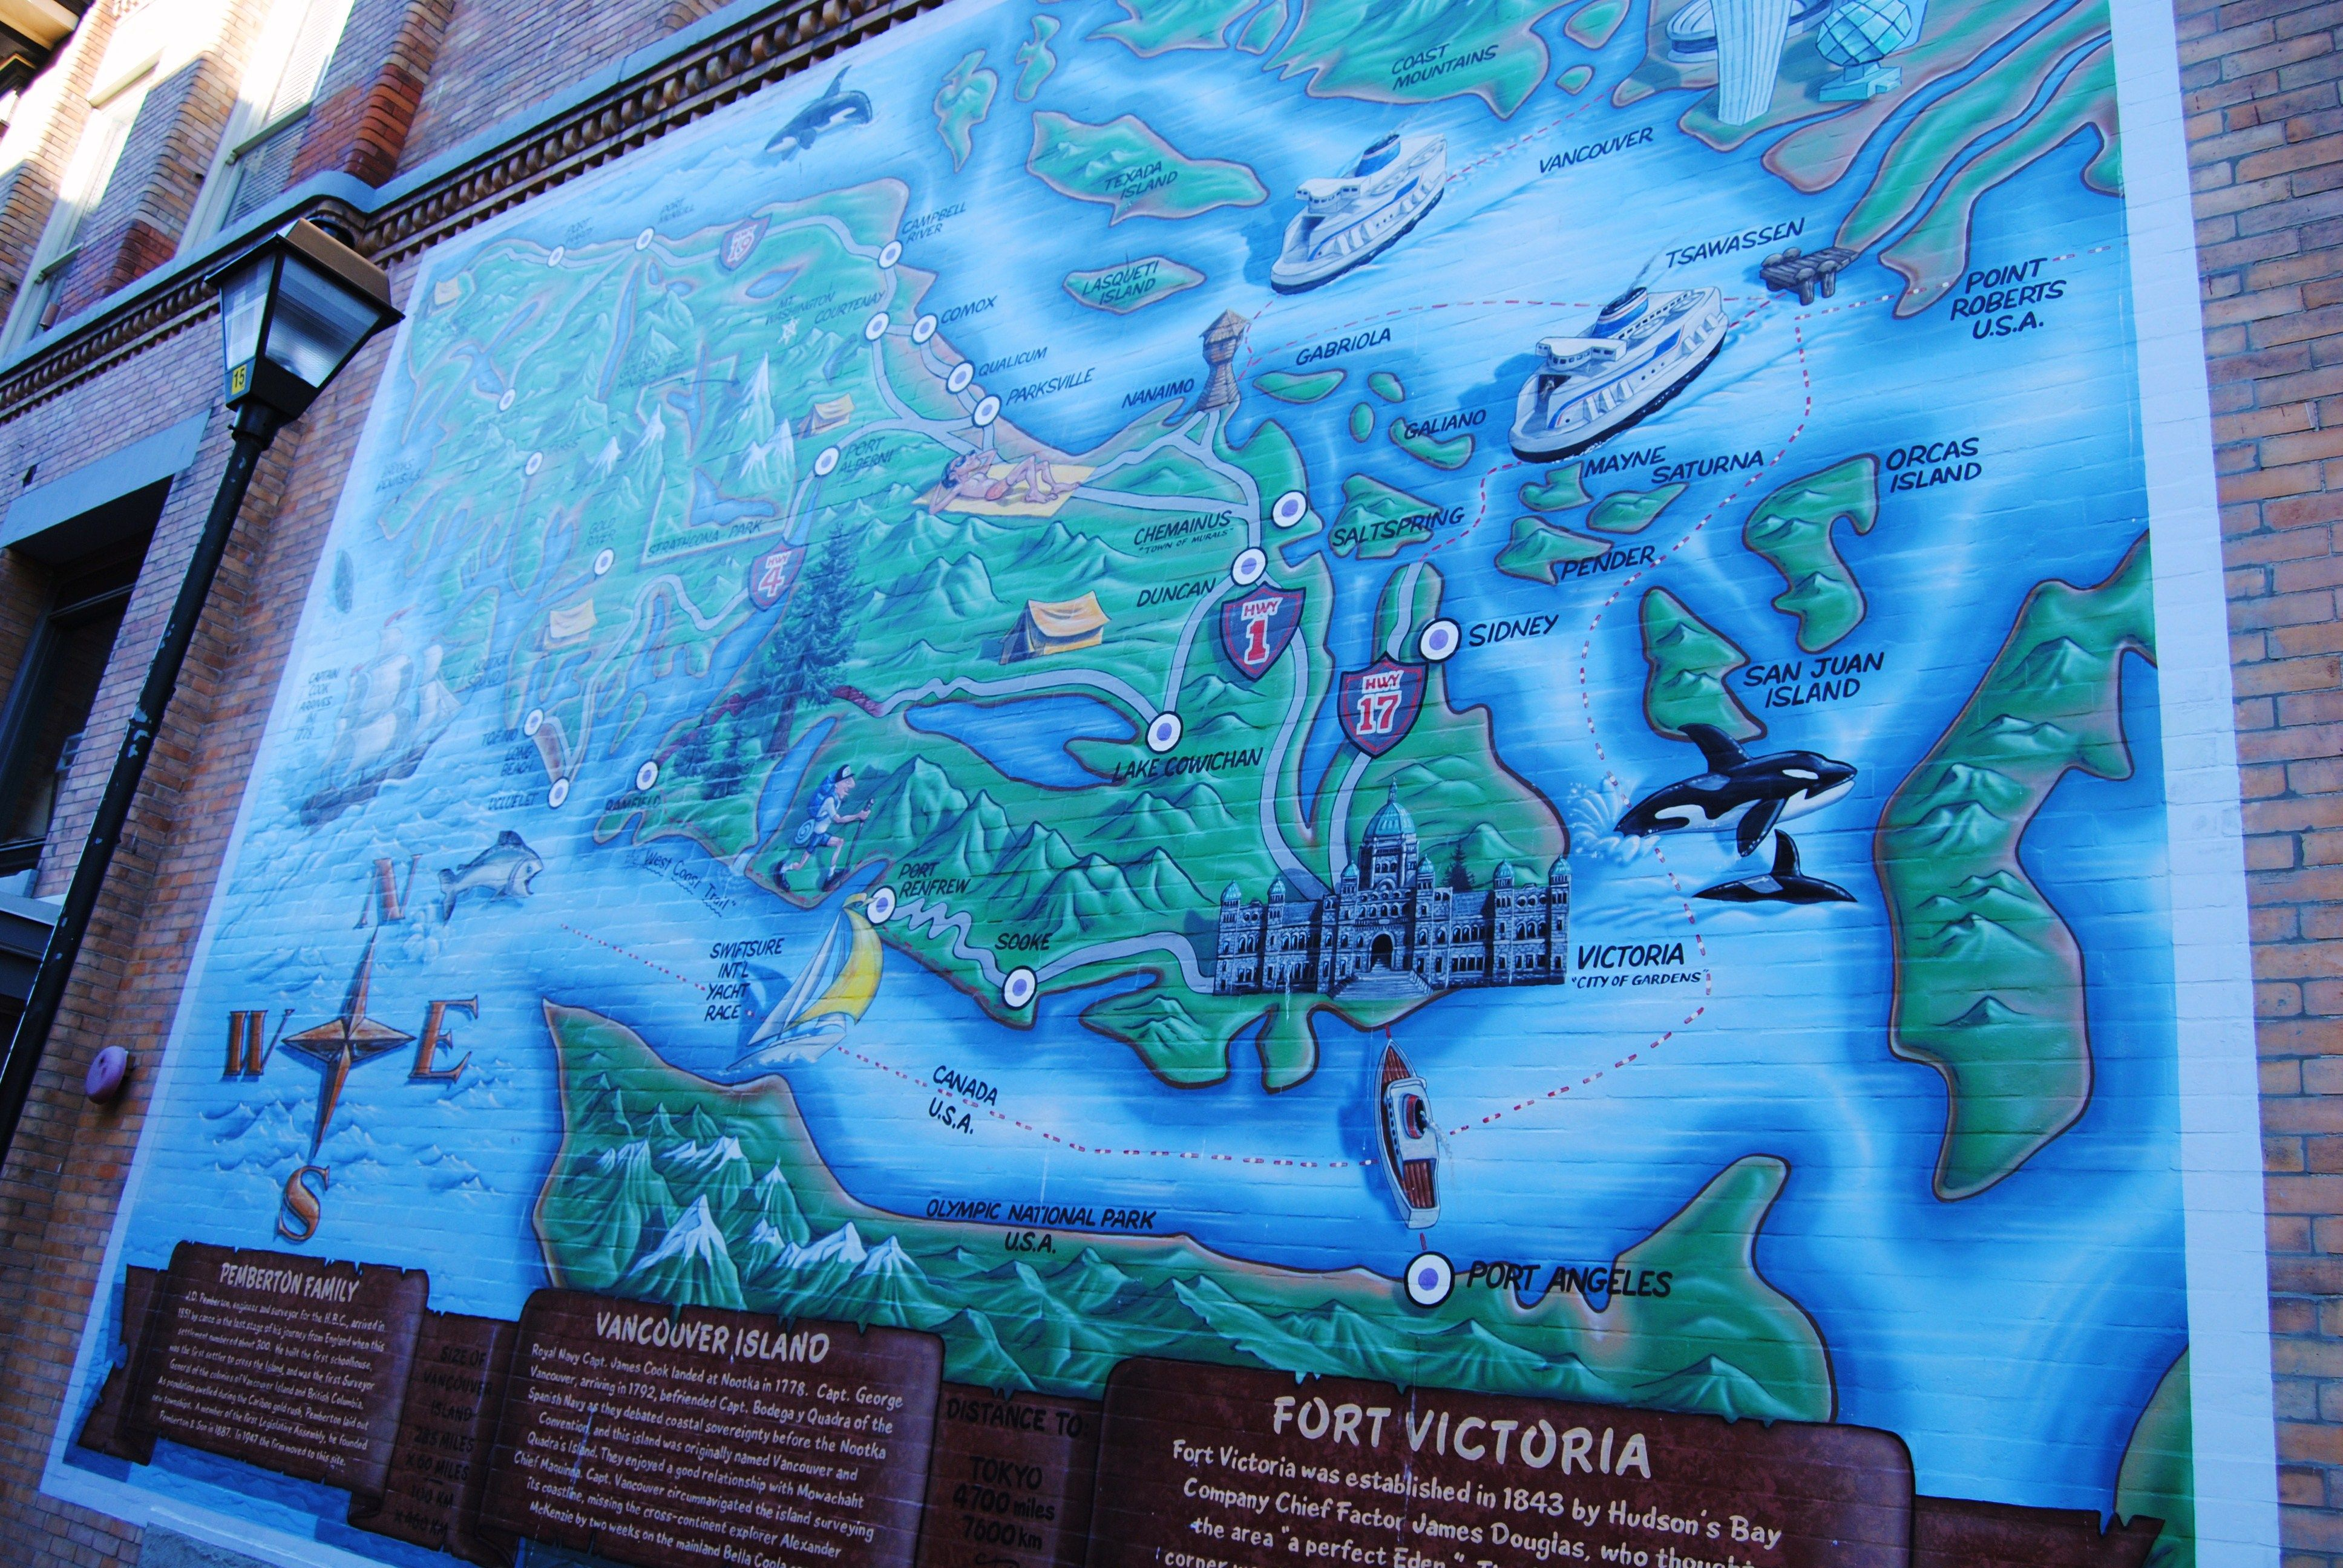 Victoria street art vancouver island map broughton st pemberton victoria street art vancouver island map broughton st pemberton land surveyor monument http gumiabroncs Gallery